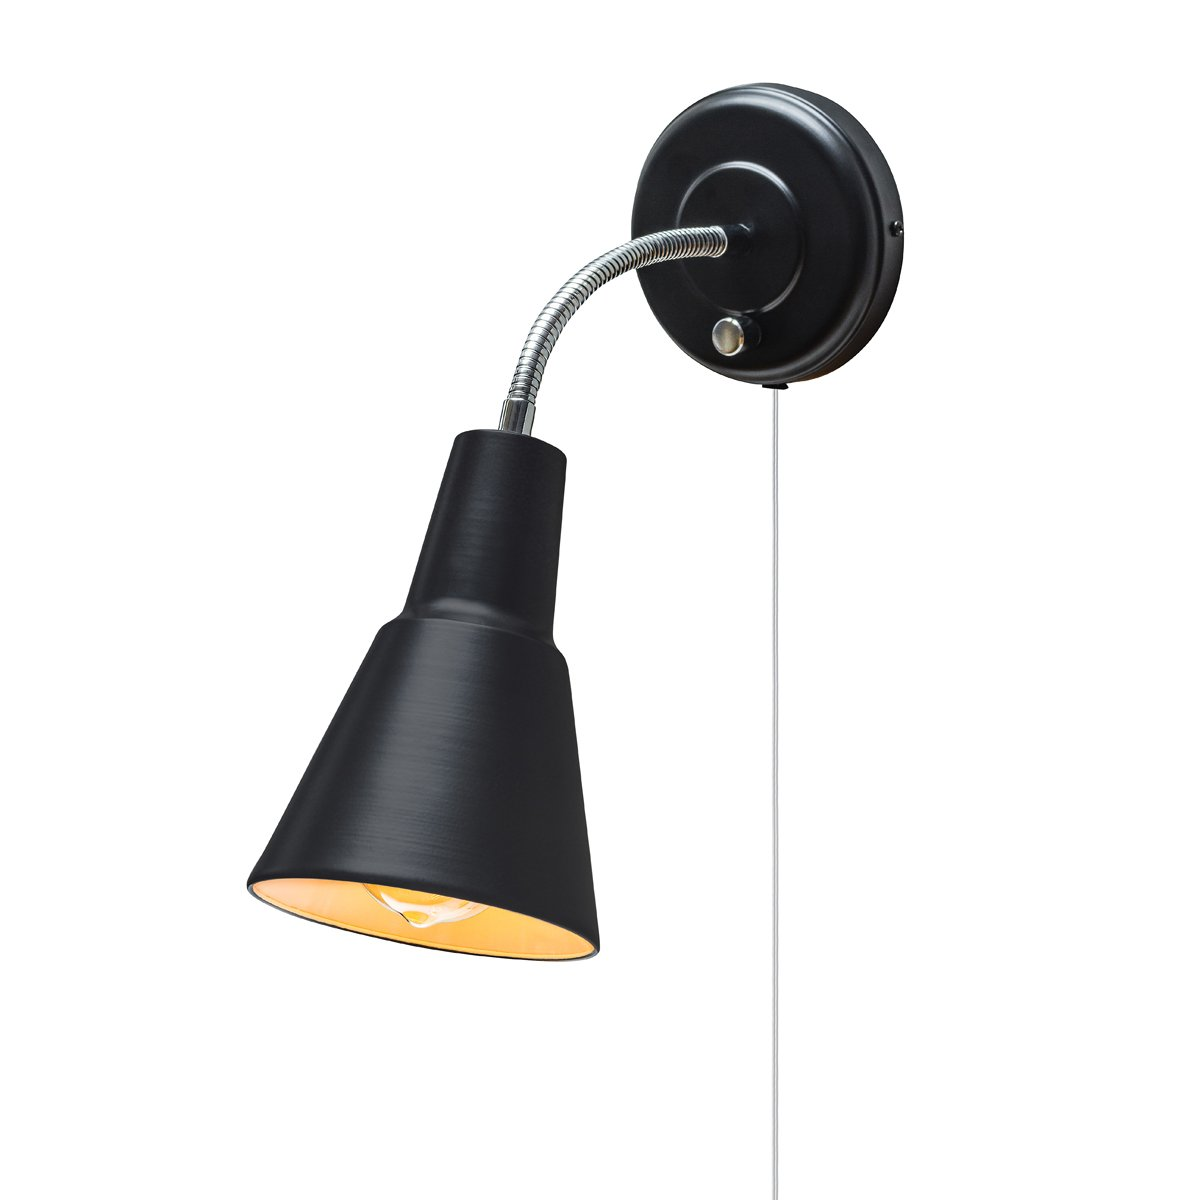 Globe Electric 1-Light Plug-In or Hardwire Task Wall Light, Chrome Gooseneck, Matte Black Finish, 6 Foot Clear Cord, 1x 60W Max E26 Bulb (sold separately), 65312